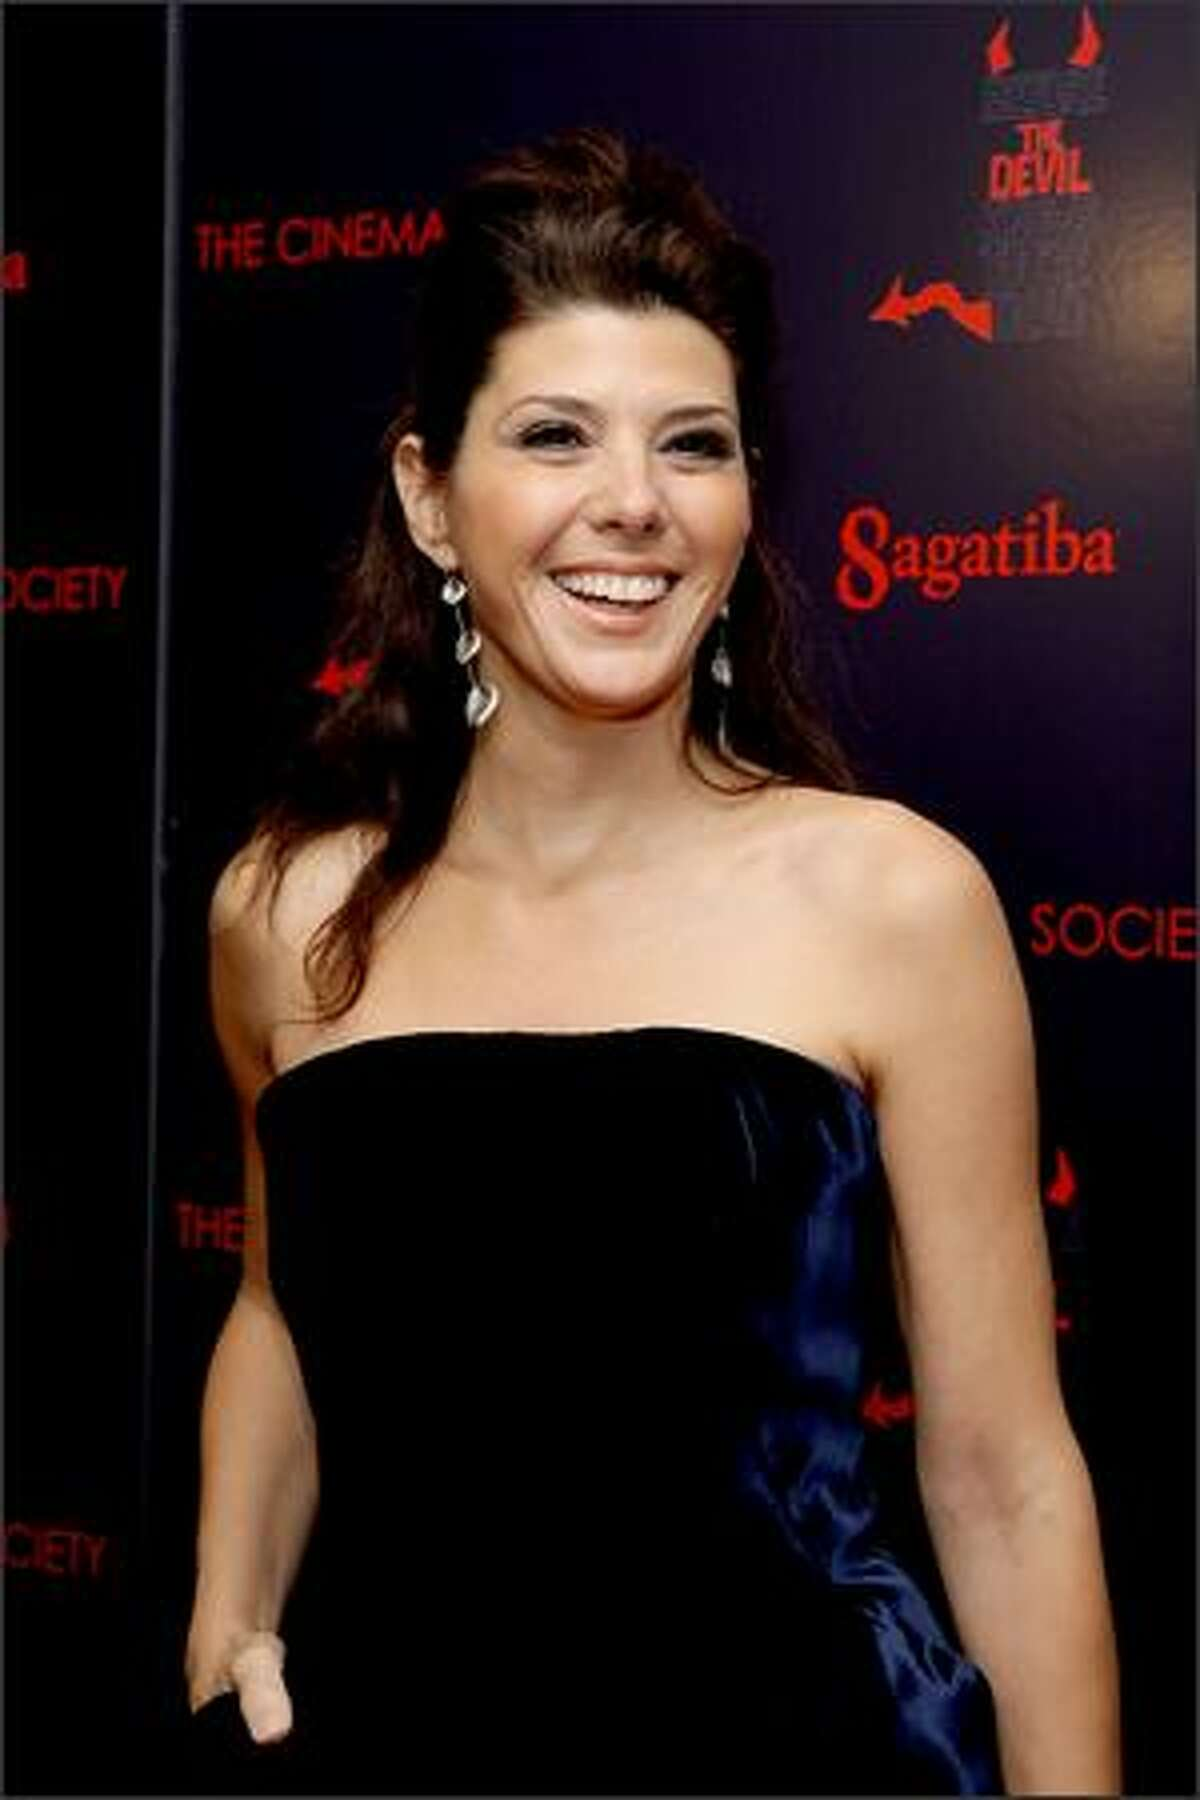 Actress Marisa Tomei attends the New York premiere of